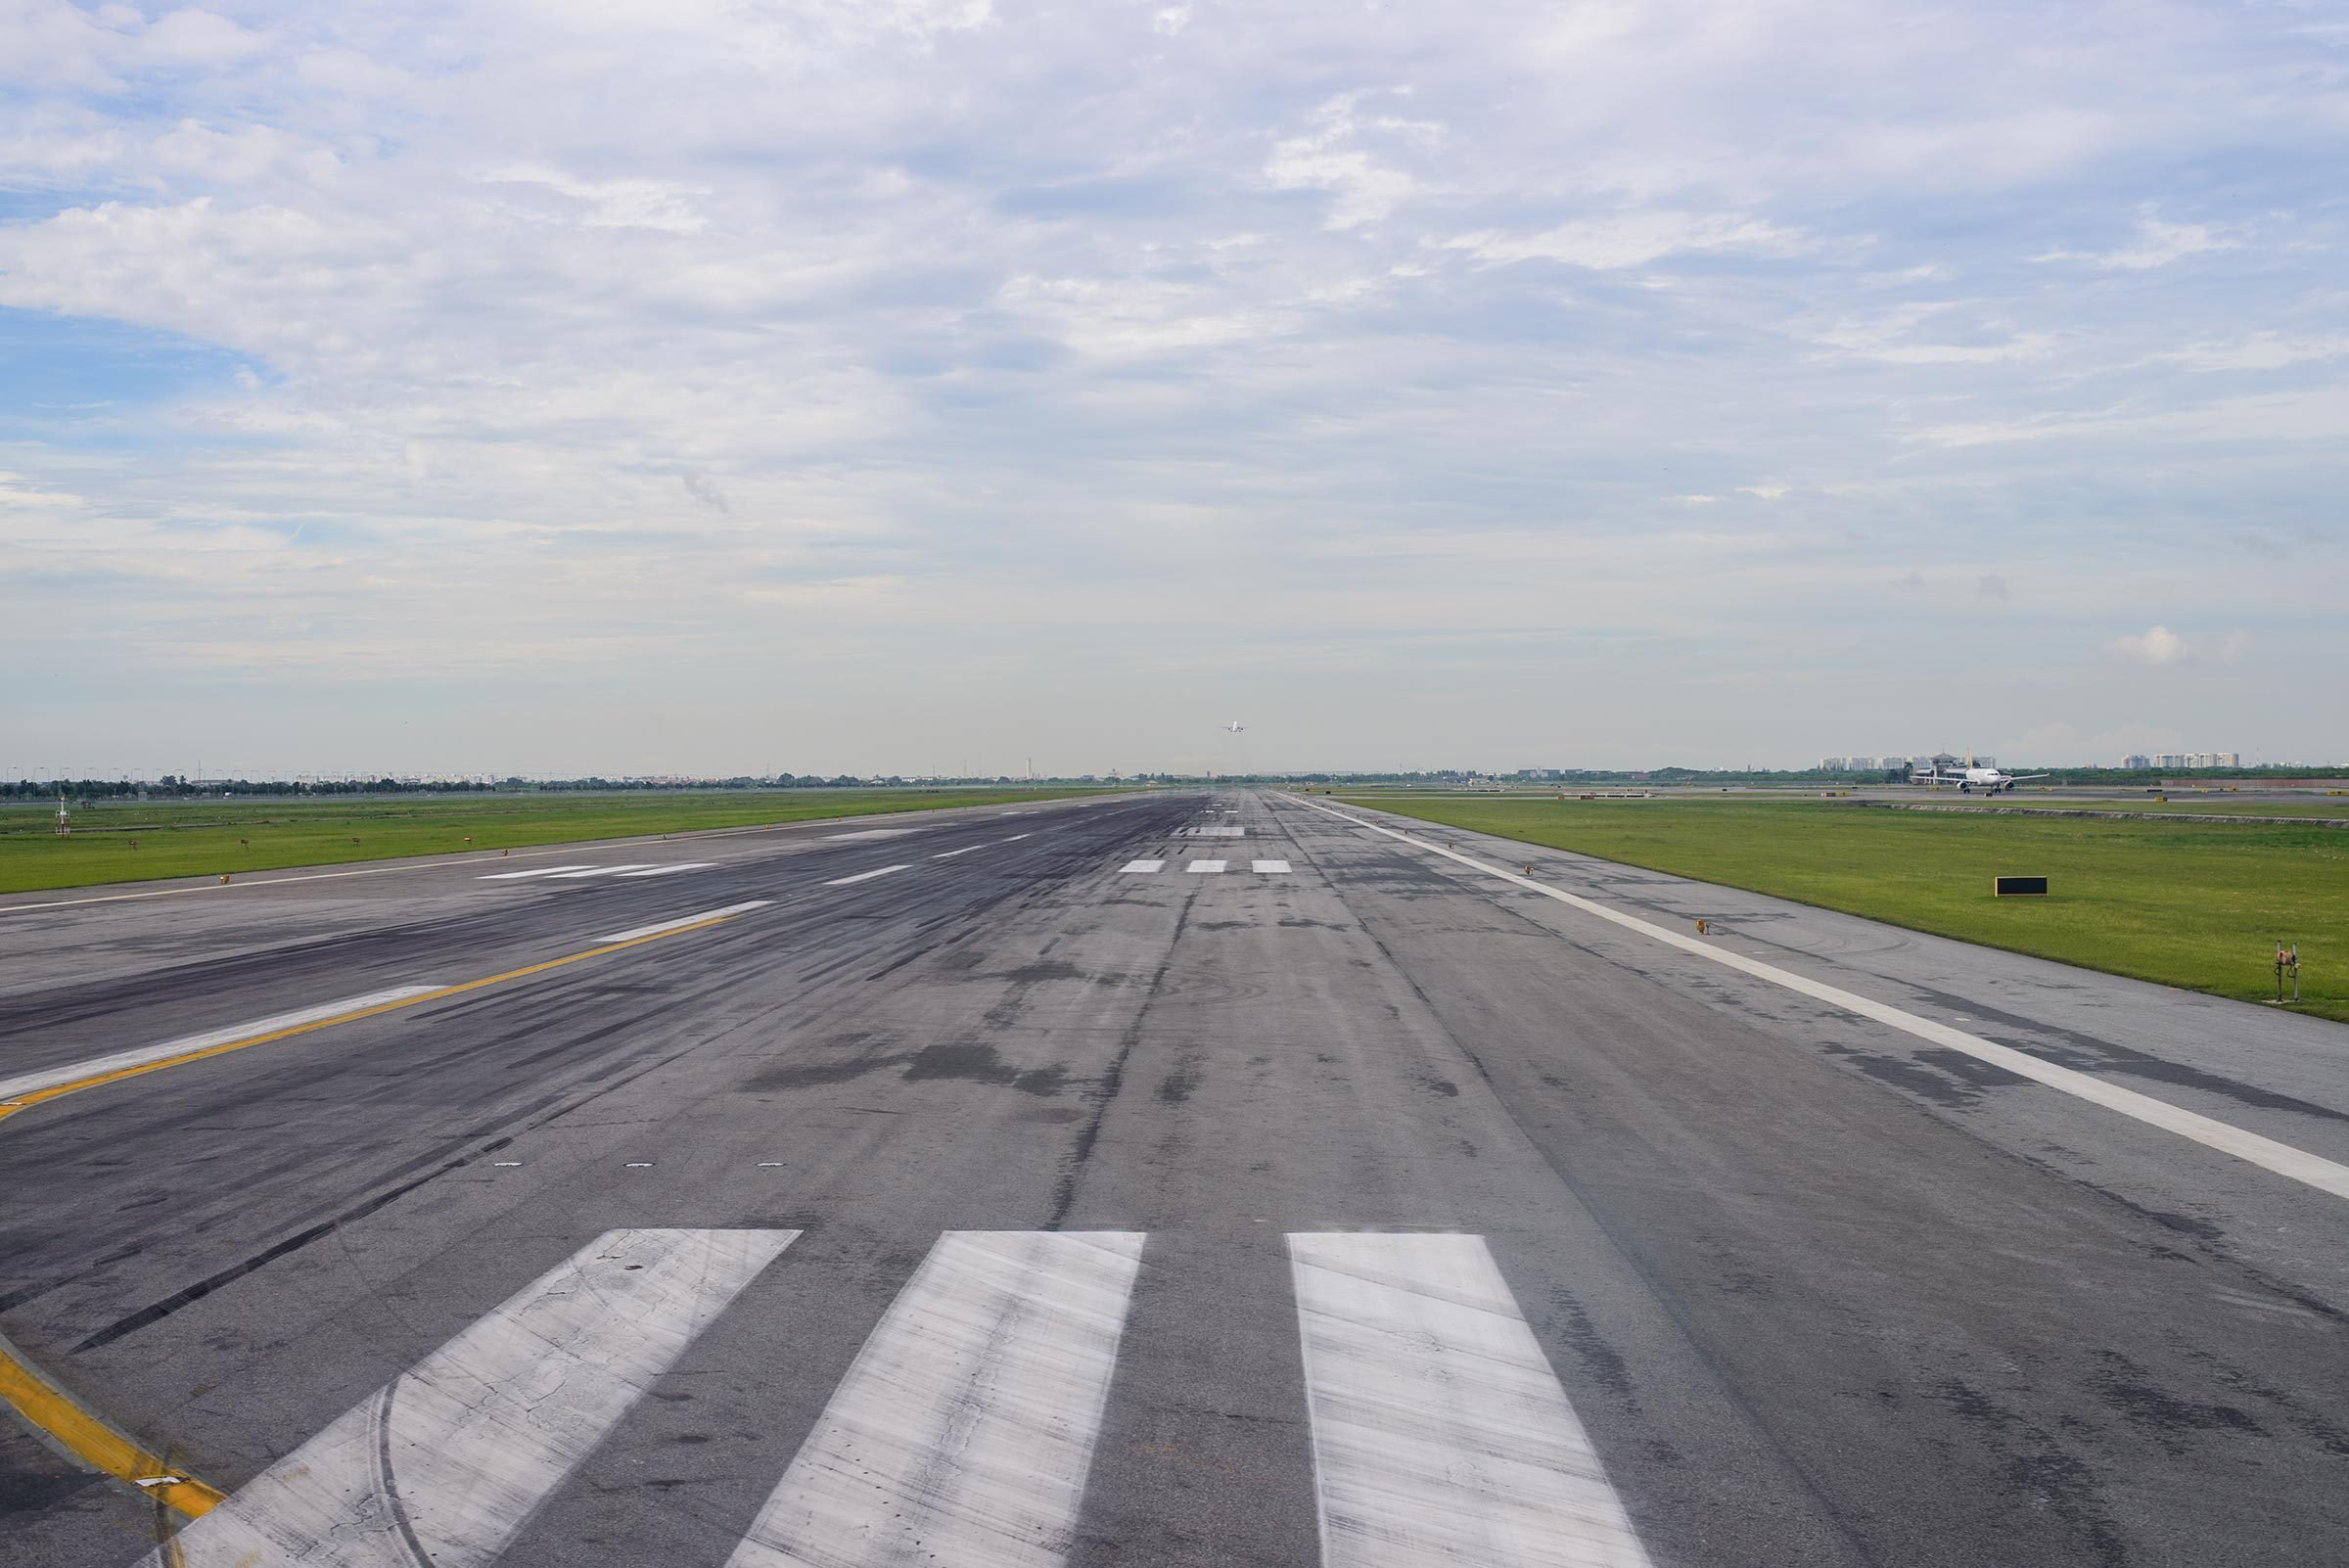 Runway of an airport. An airplane just took off in the background